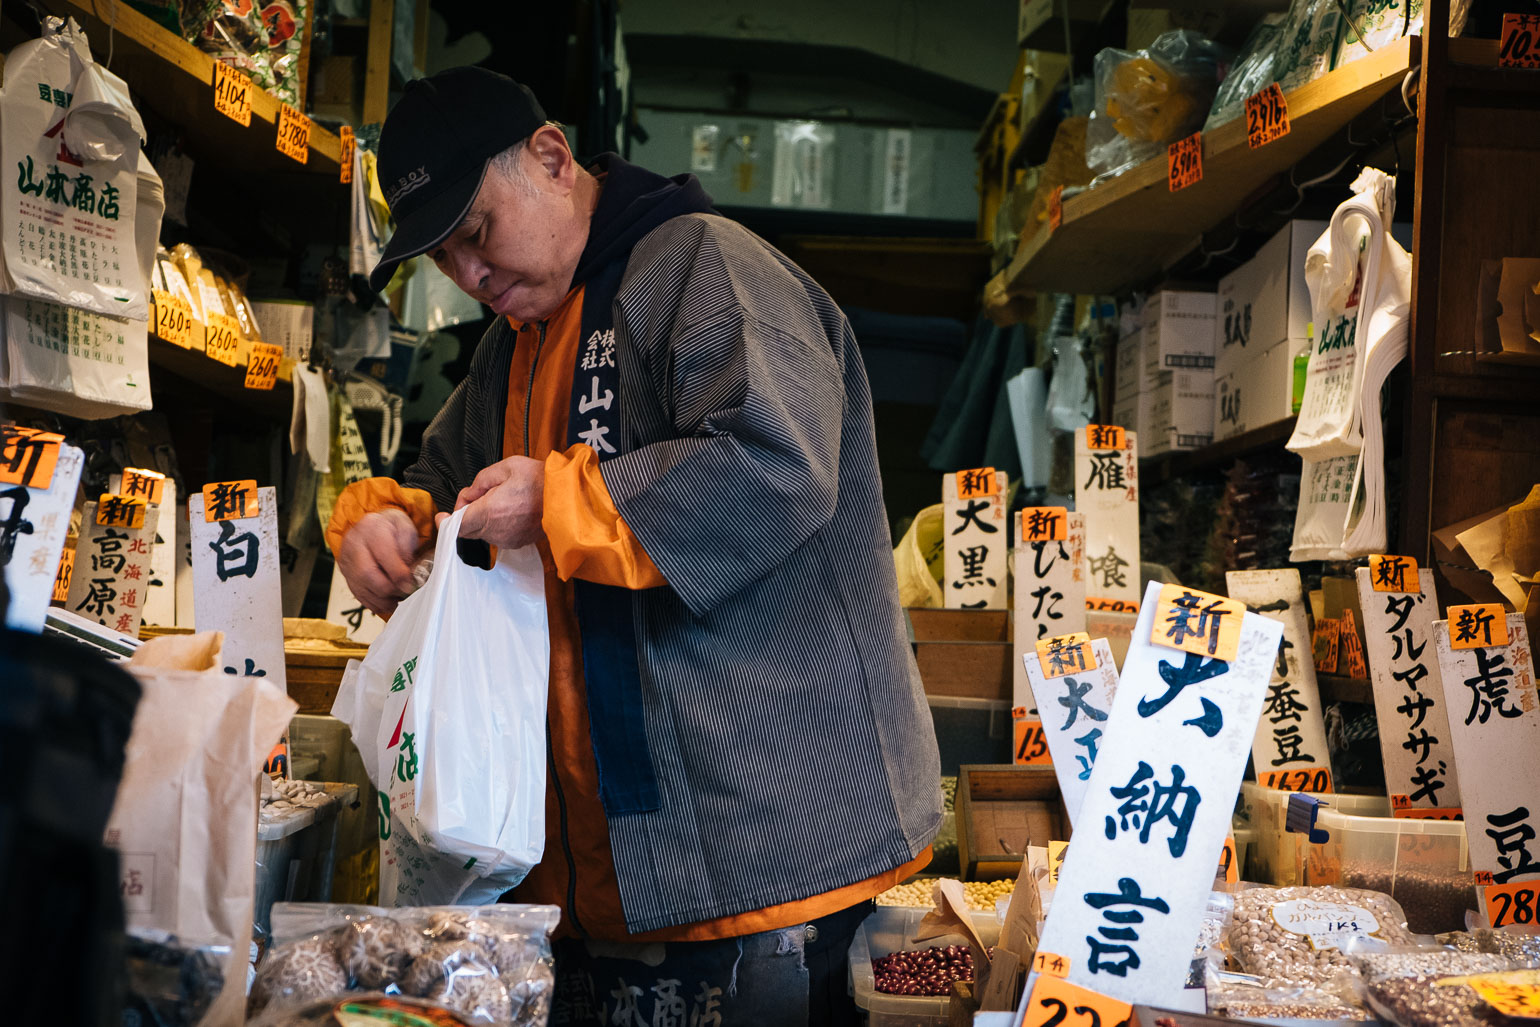 Shop keeper bags produce up at Tsukiji Fish Market